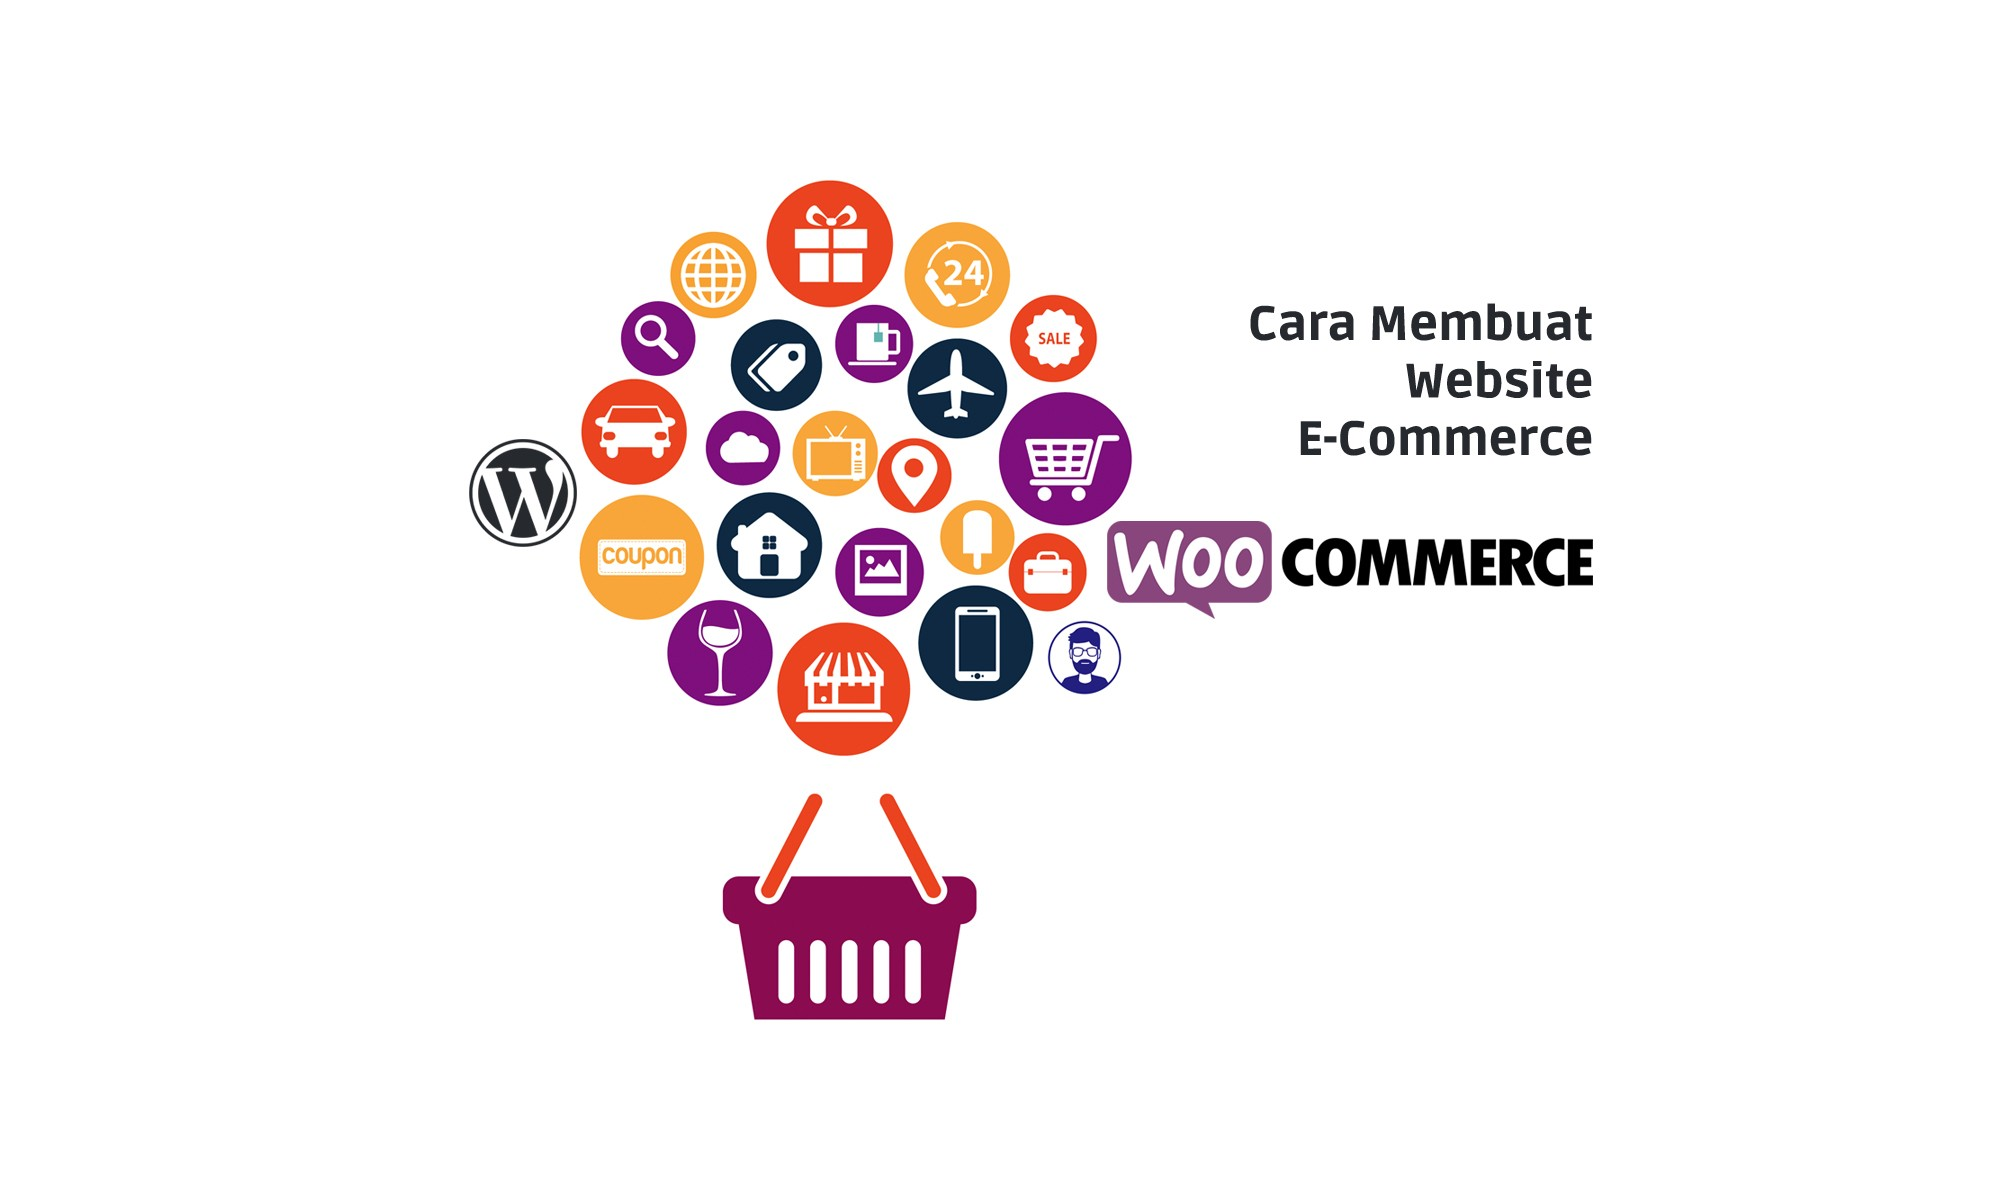 Membuat Website E-Commerce dengan WooCommerce